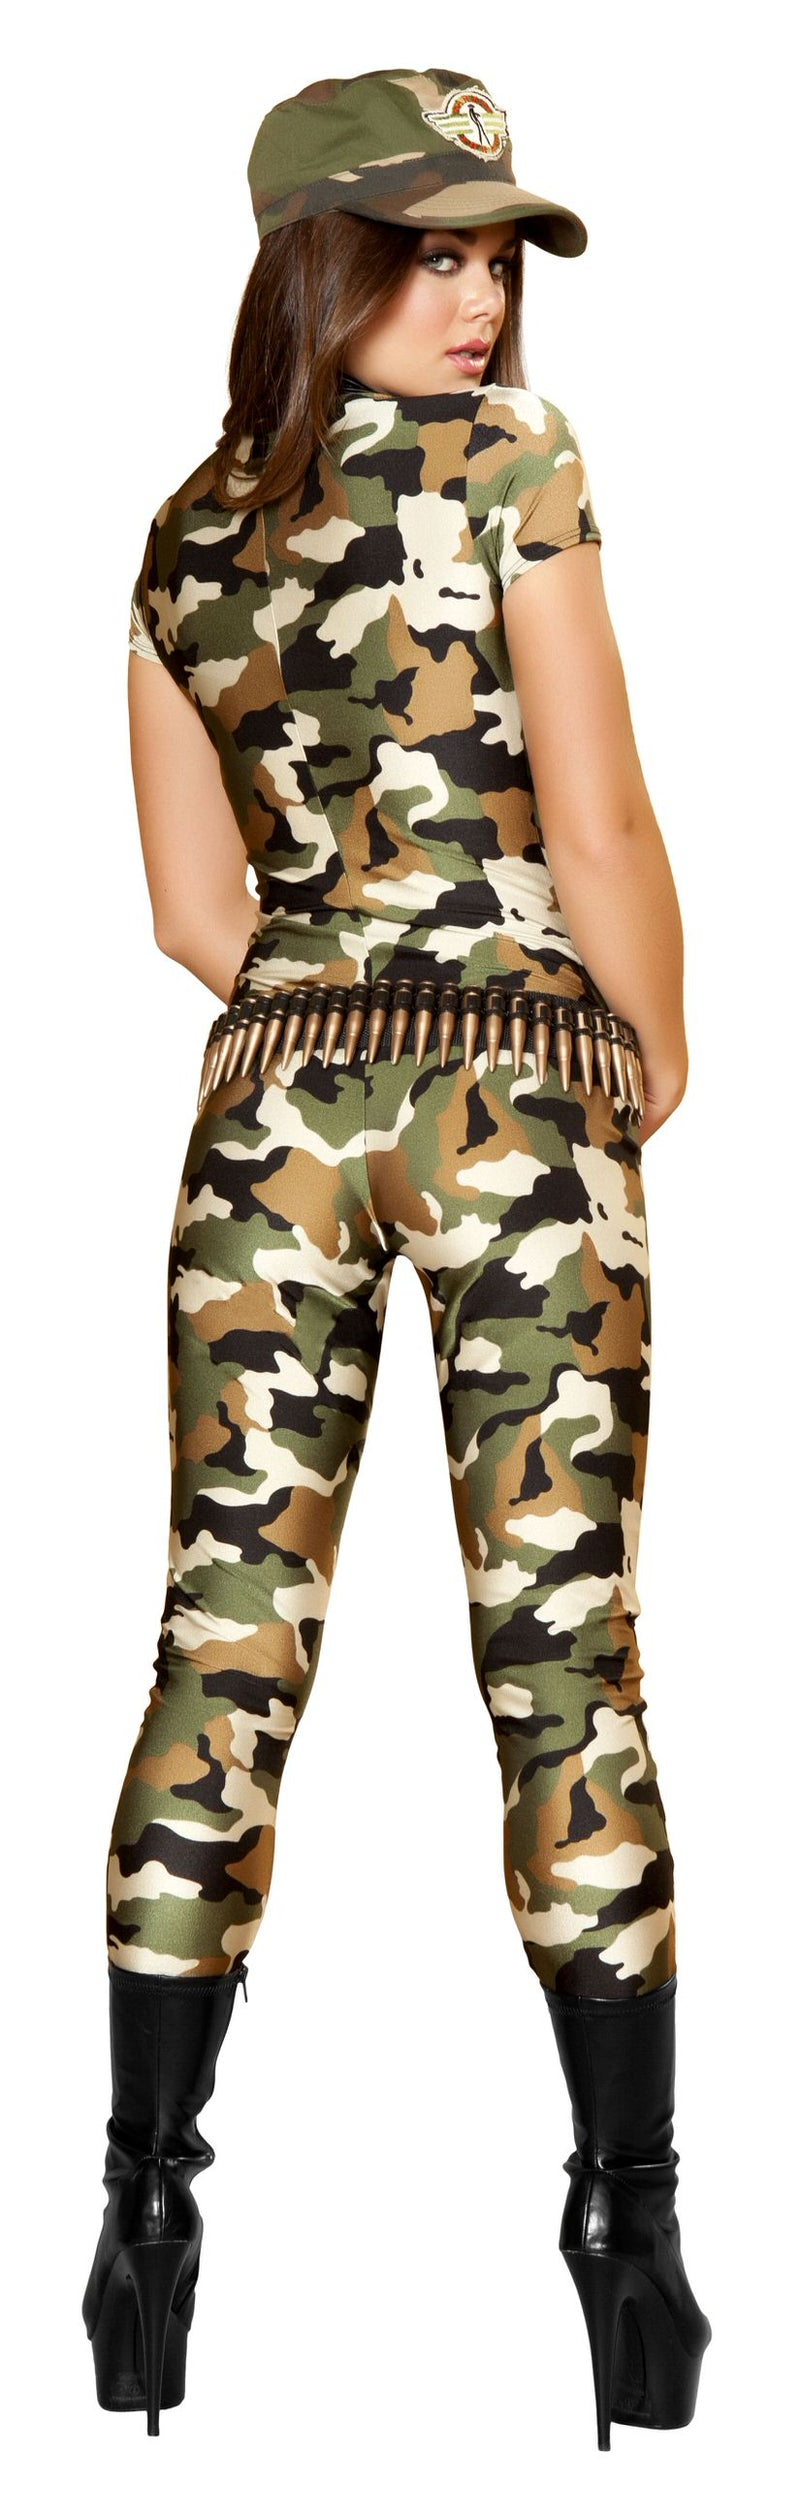 2 Piece Army Babe Camo Jumpsuit & Hat Party Costume - Fest Threads